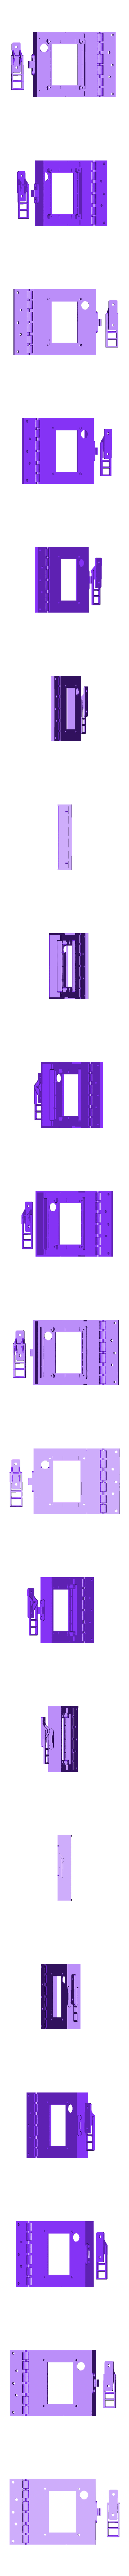 REV_2.X_CR_10s_hinged_hooked_control_screen_mount_for_tucking_away_under_table.stl Download free STL file Hinged, Hooked, CR 10(S) LCD screen mount. • 3D printable model, JeenyusPete